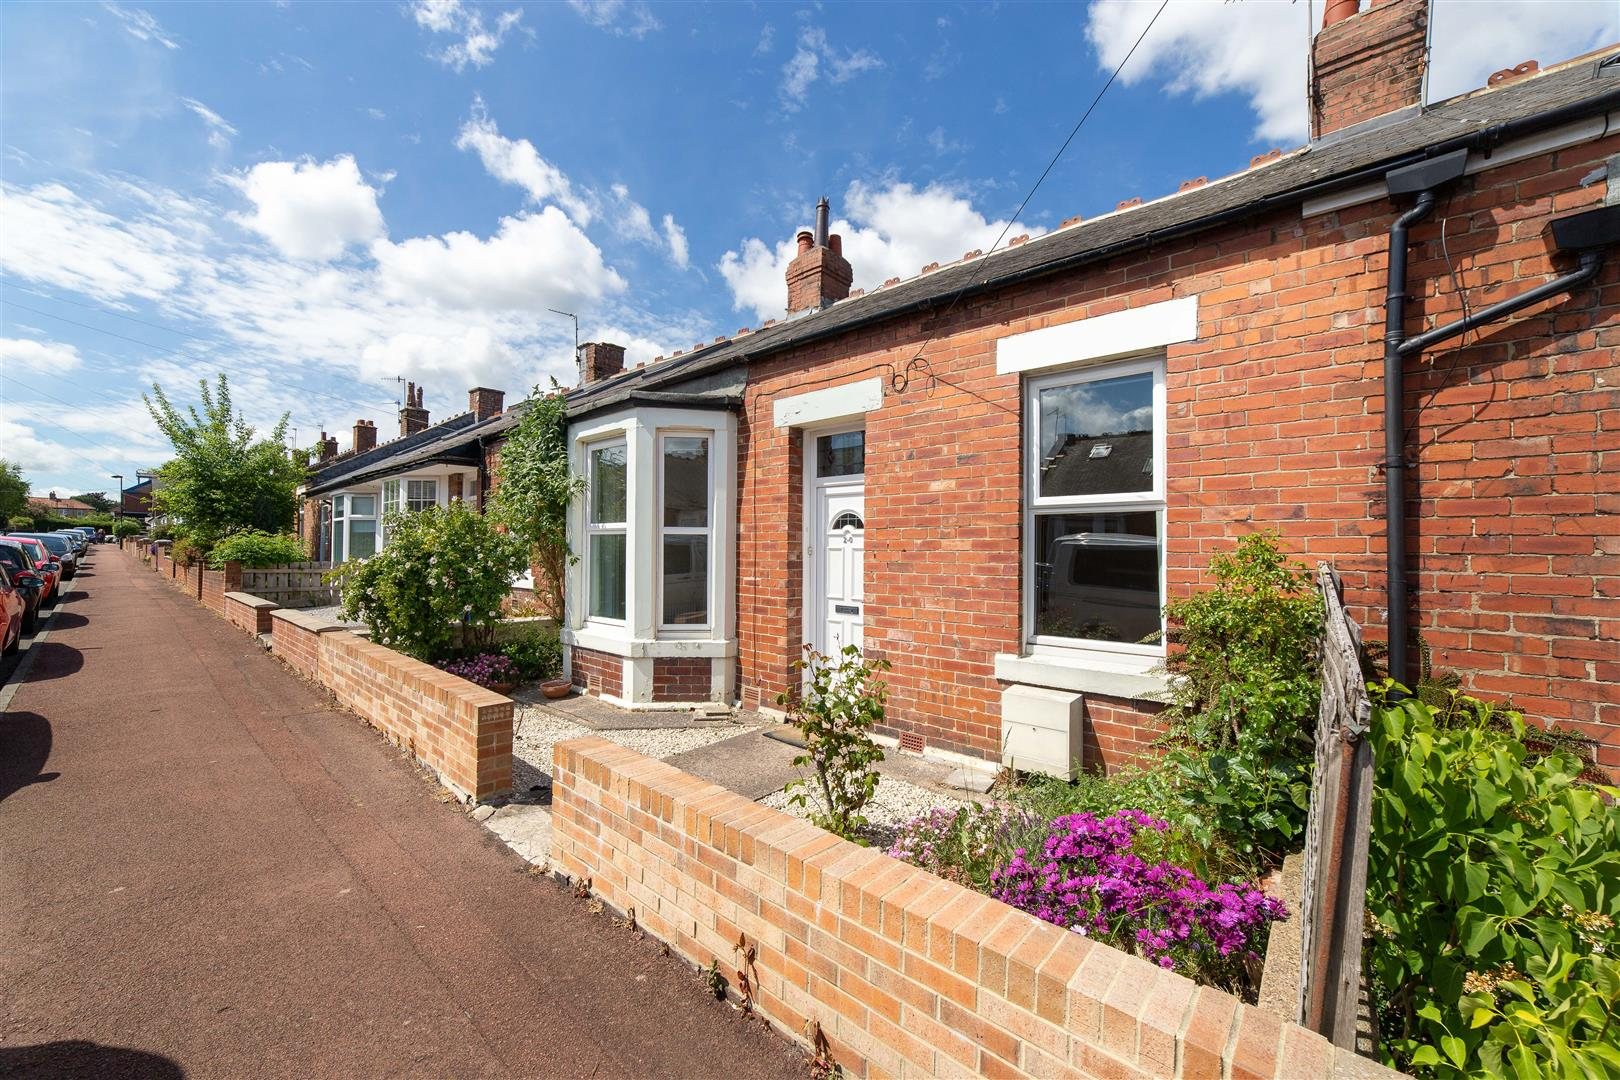 3 bed terraced bungalow to rent in Newcastle Upon Tyne, NE3 4RQ - Property Image 1